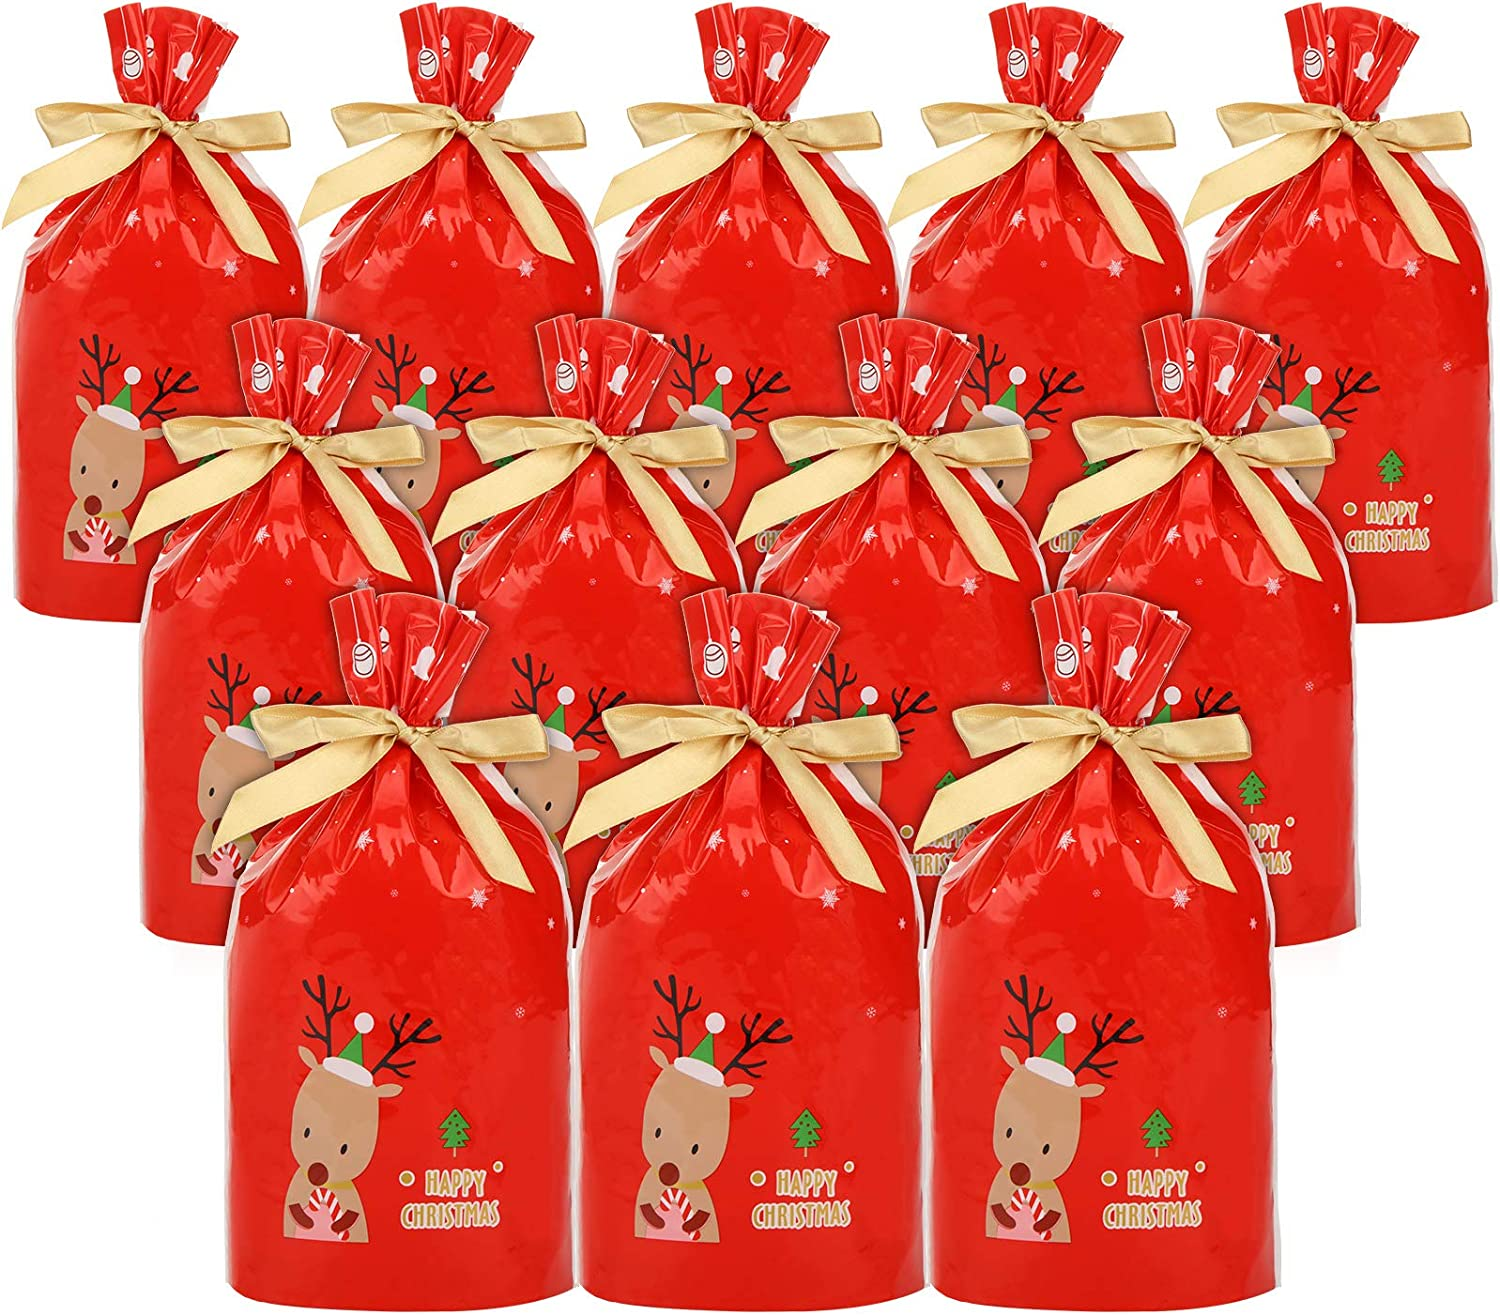 30 Pieces Christmas Drawstring Gift Bags Candy Cookie Bags Christmas Party Treat Bags Plastic Bags with Bow Tie for Xmas Party Favors, Wedding Birthday Party